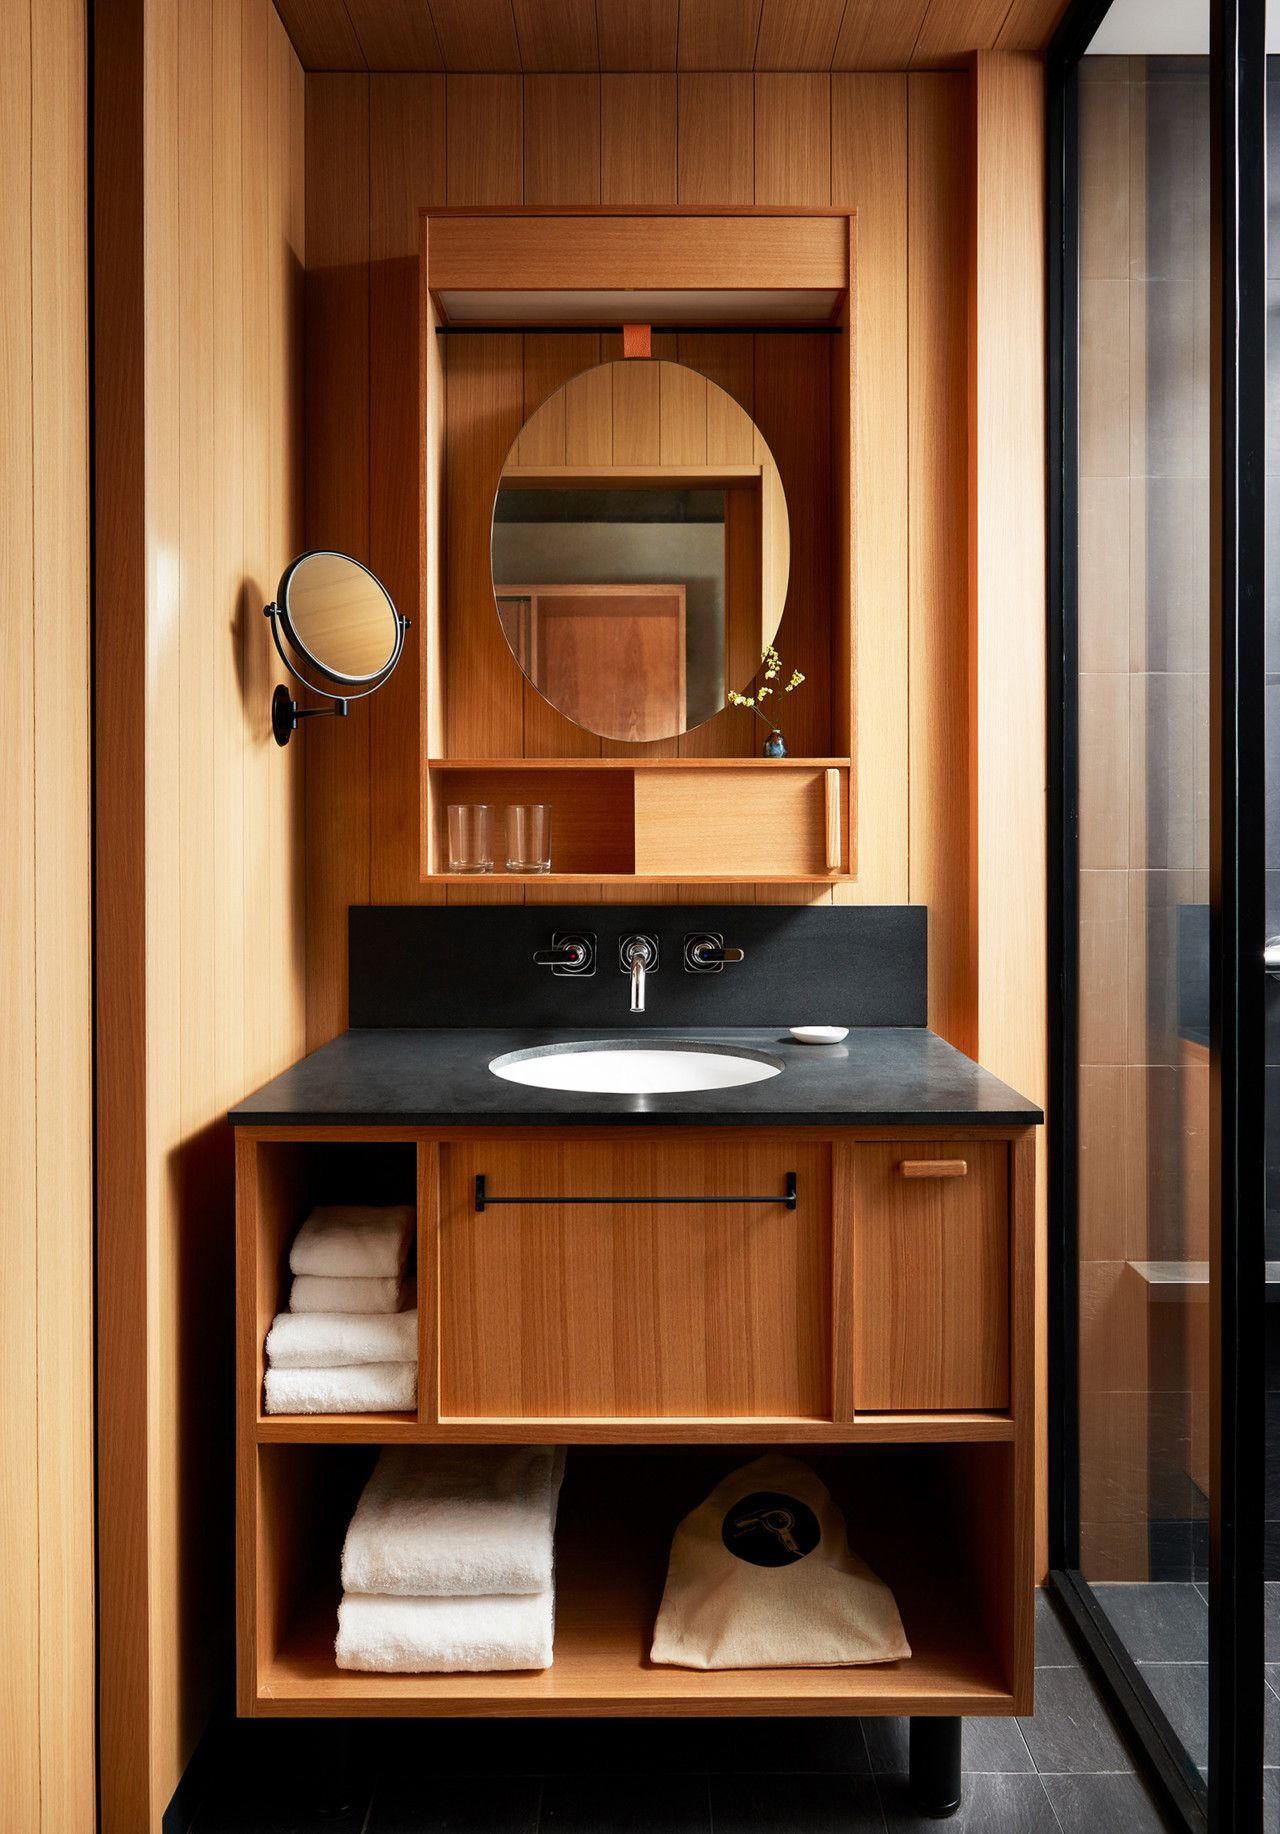 Ace Hotel Kyoto Is Perfect For Design Travelers Seeking Elevated Yet Unfussy Accommodations Japanese Interior Design Ace Hotel House Interior